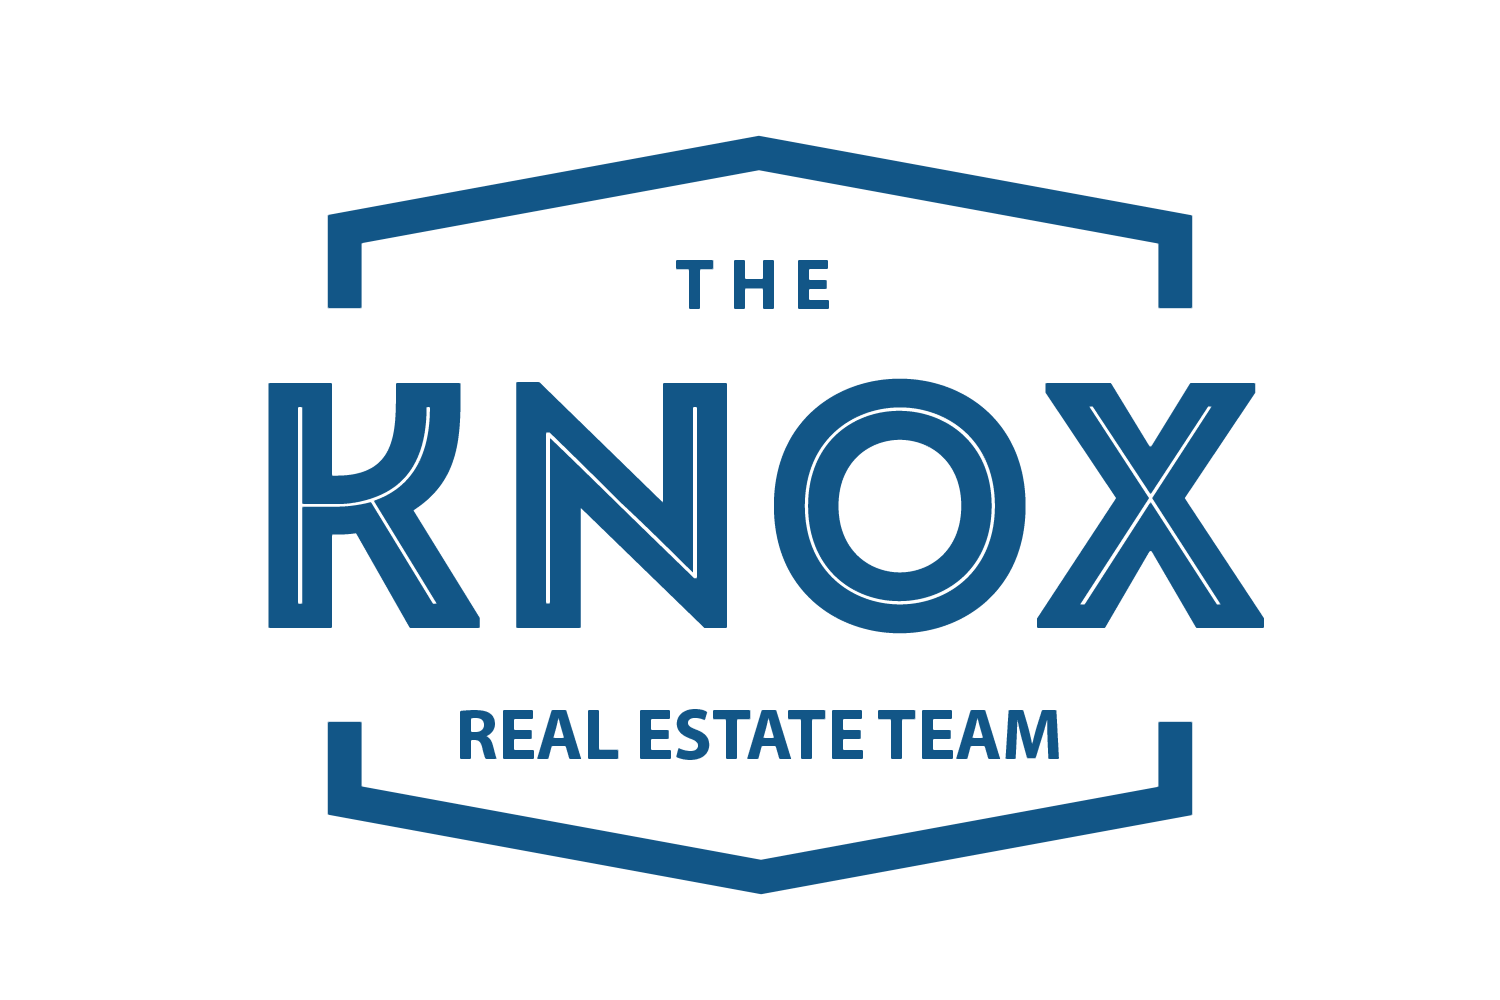 The Knox Real Estate Team